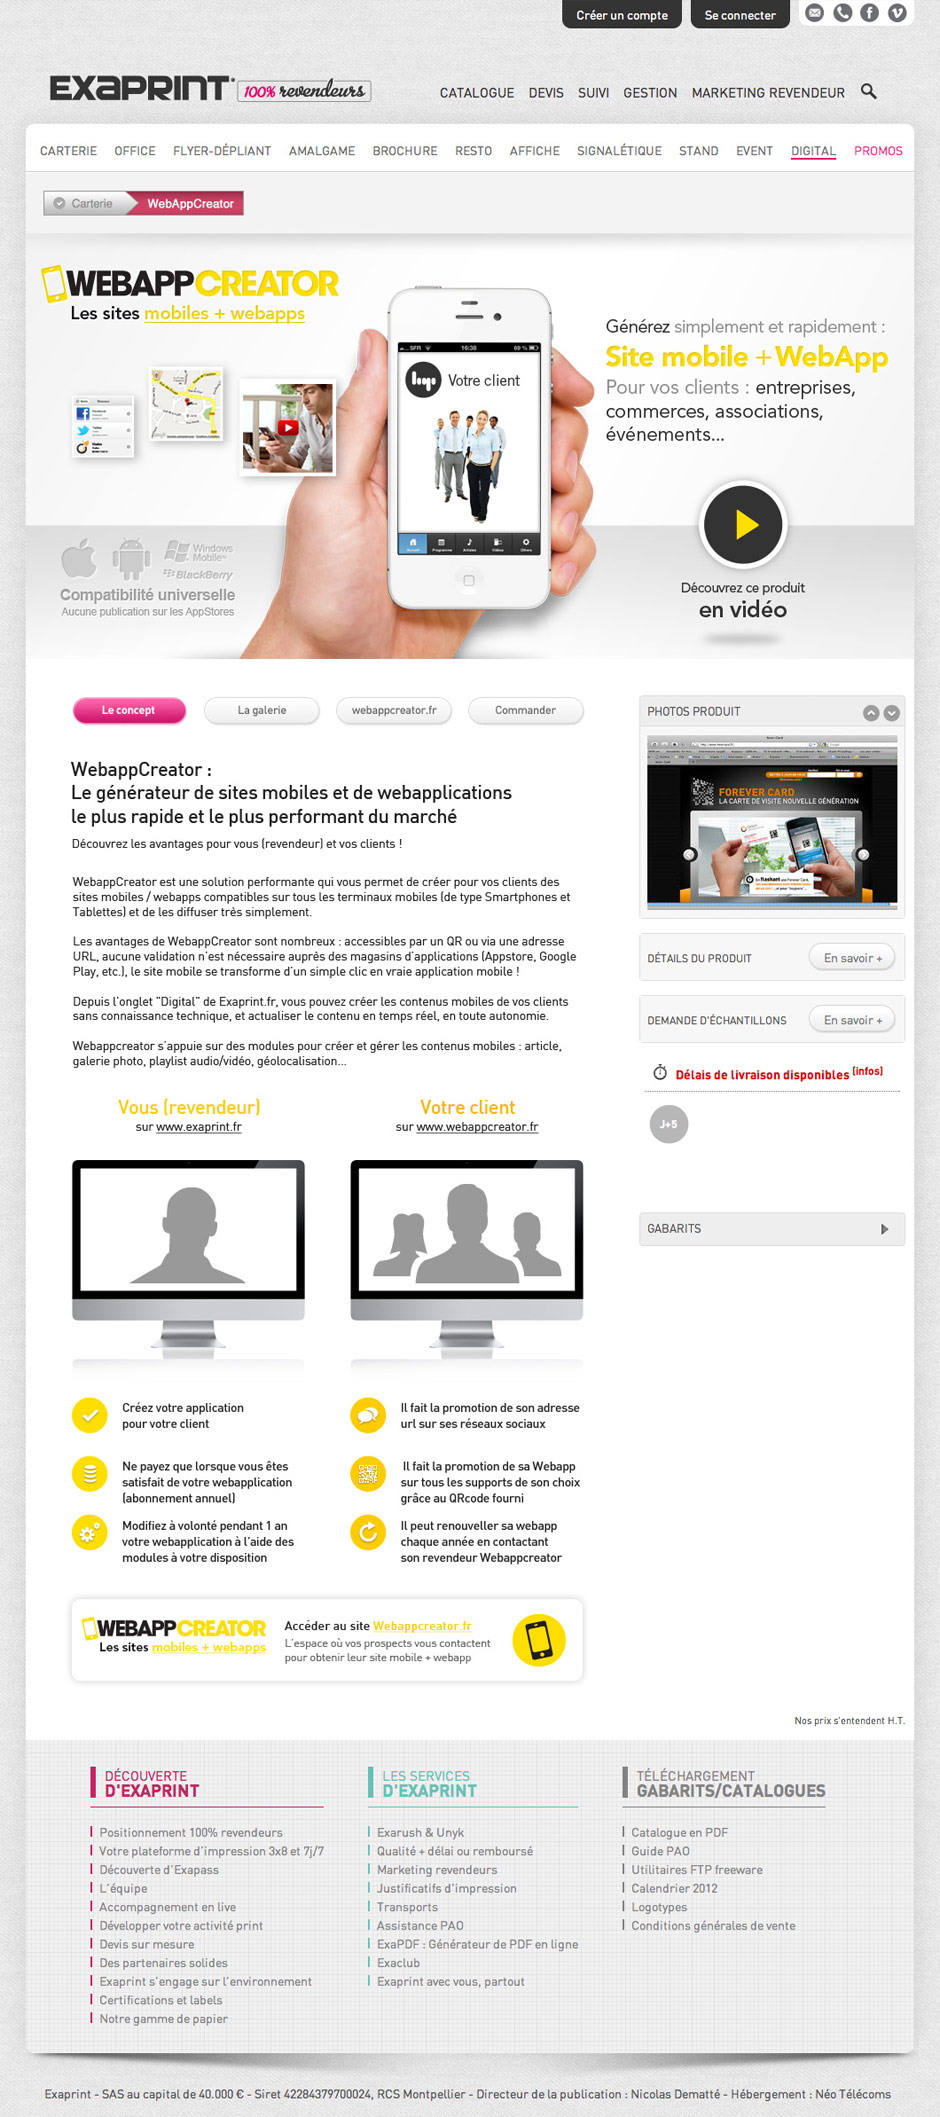 graphiste-montpellier-creation-exaprint-webappcreator-agence-communication-montpellier-caconcept-alexis-cretin-2